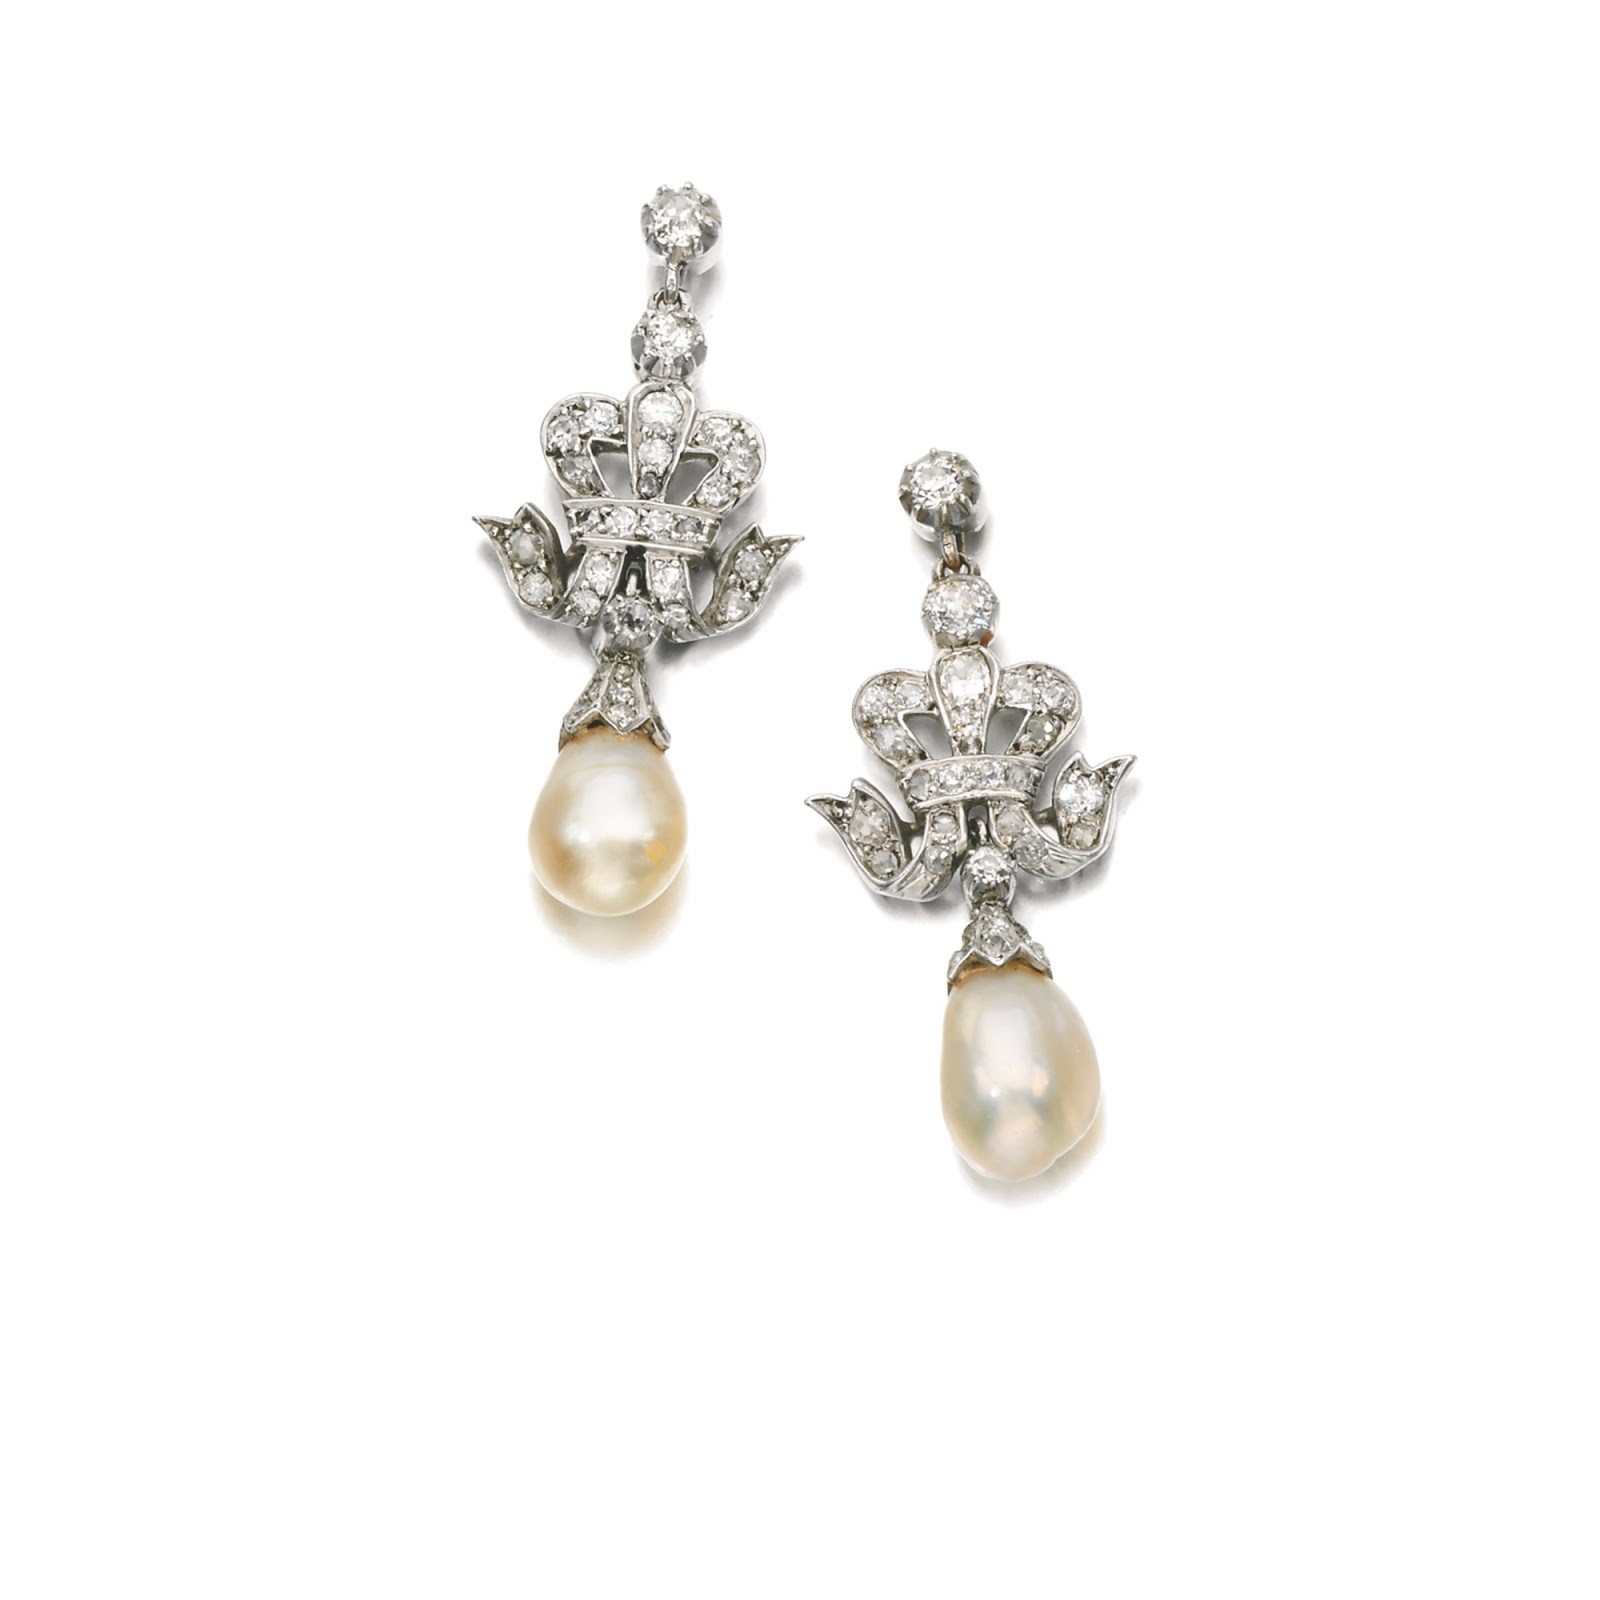 Marie Poutine's Jewels & Royals: Elegant Diamond and Pearl ...